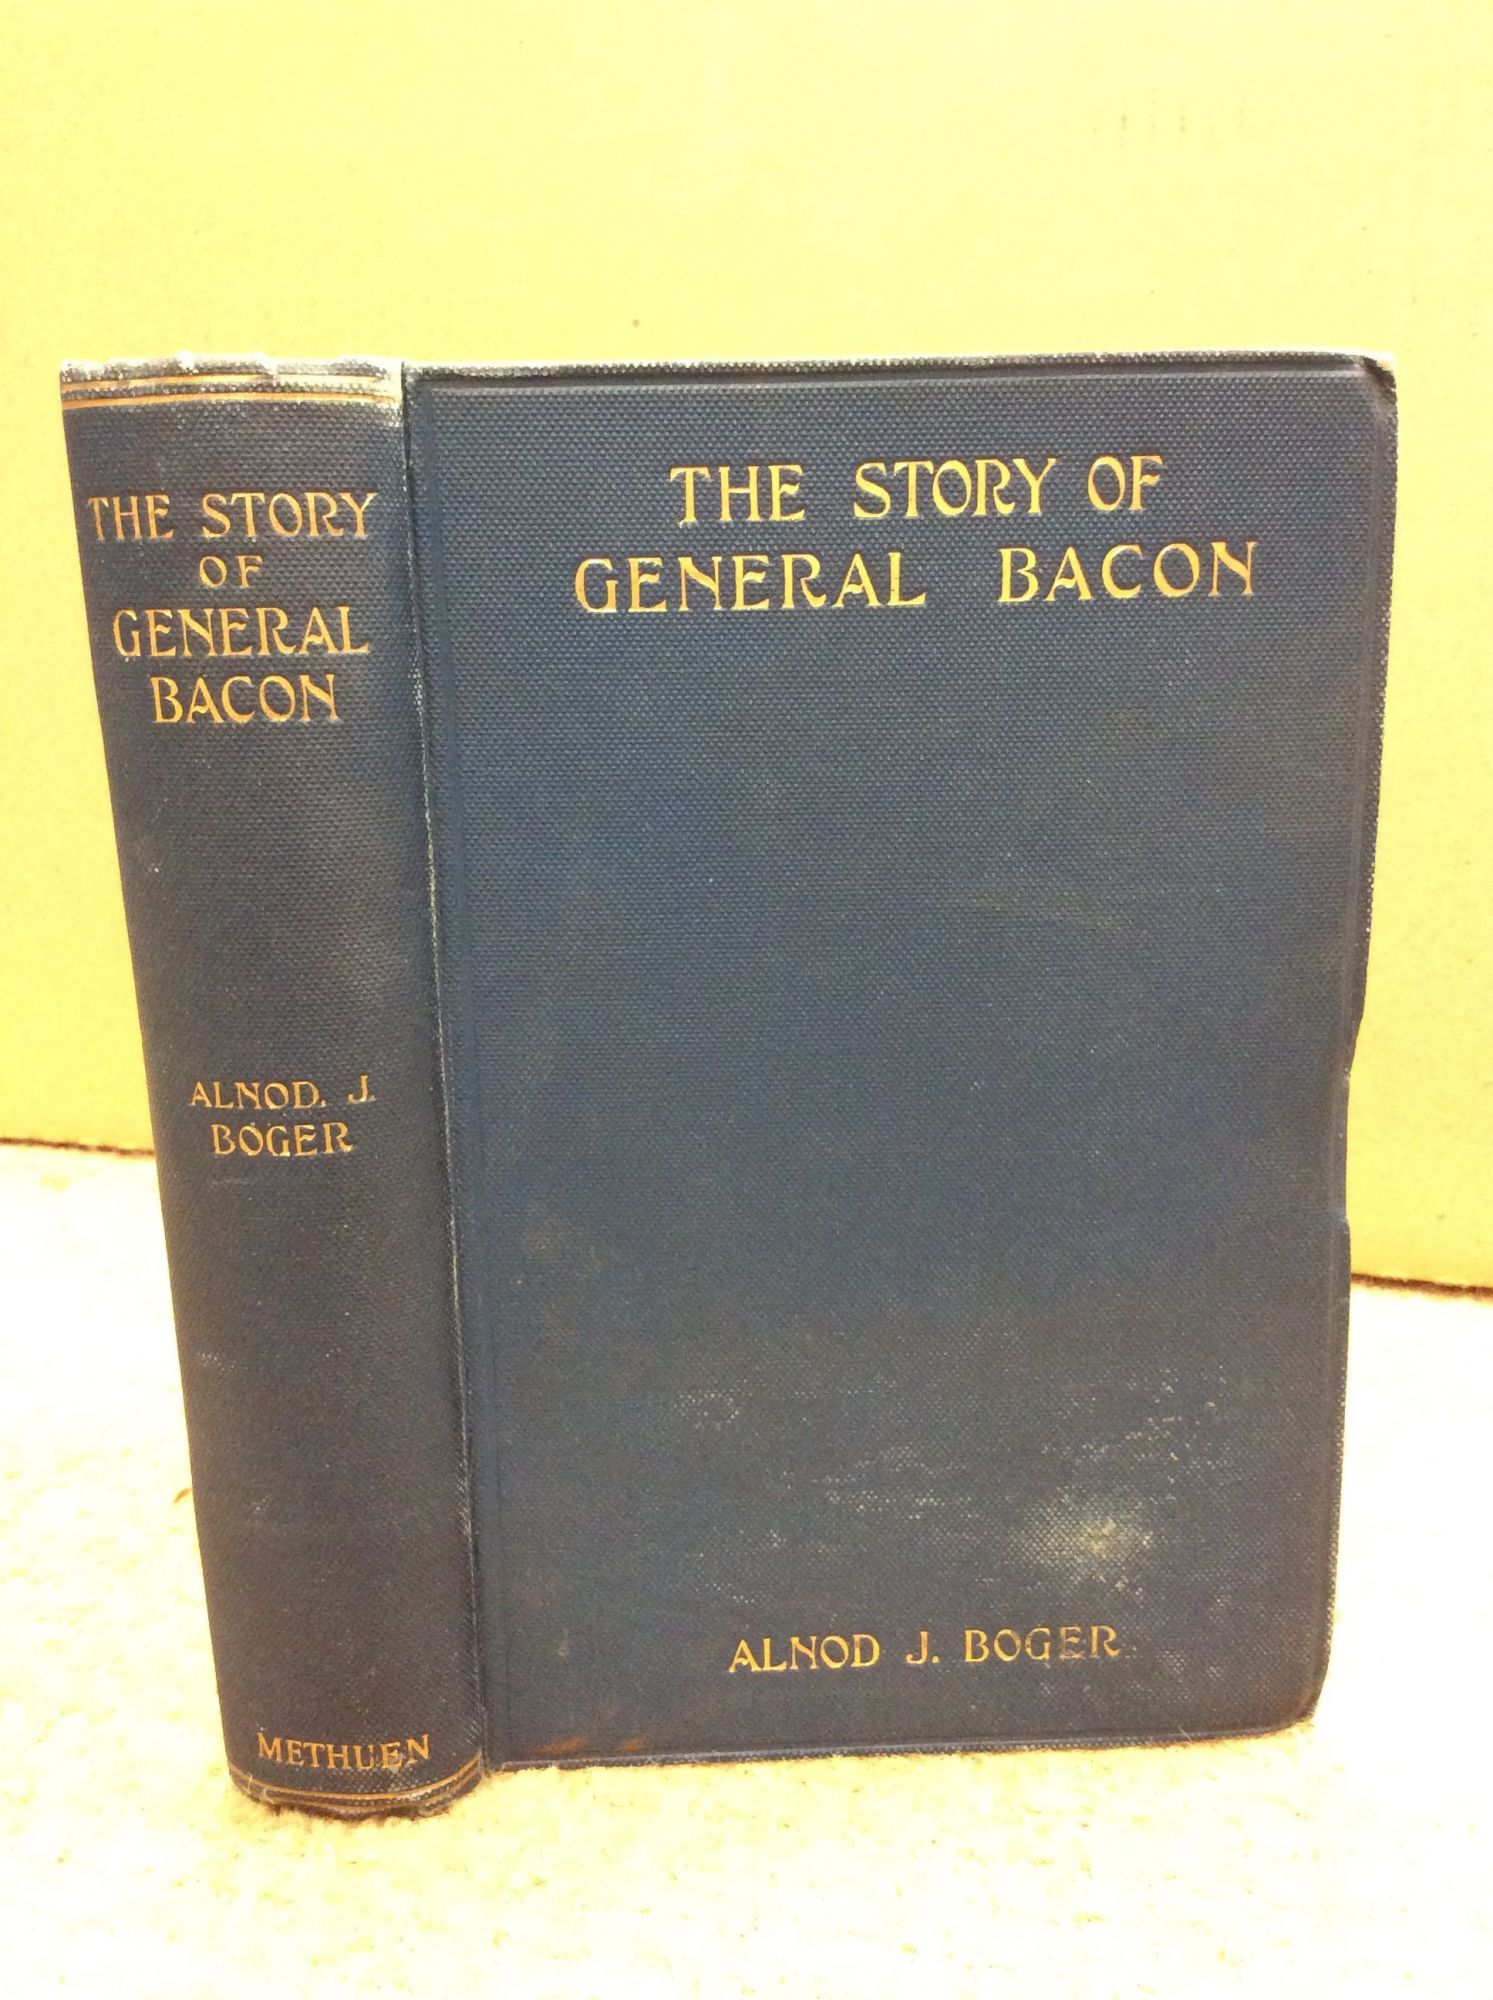 The story of bacon